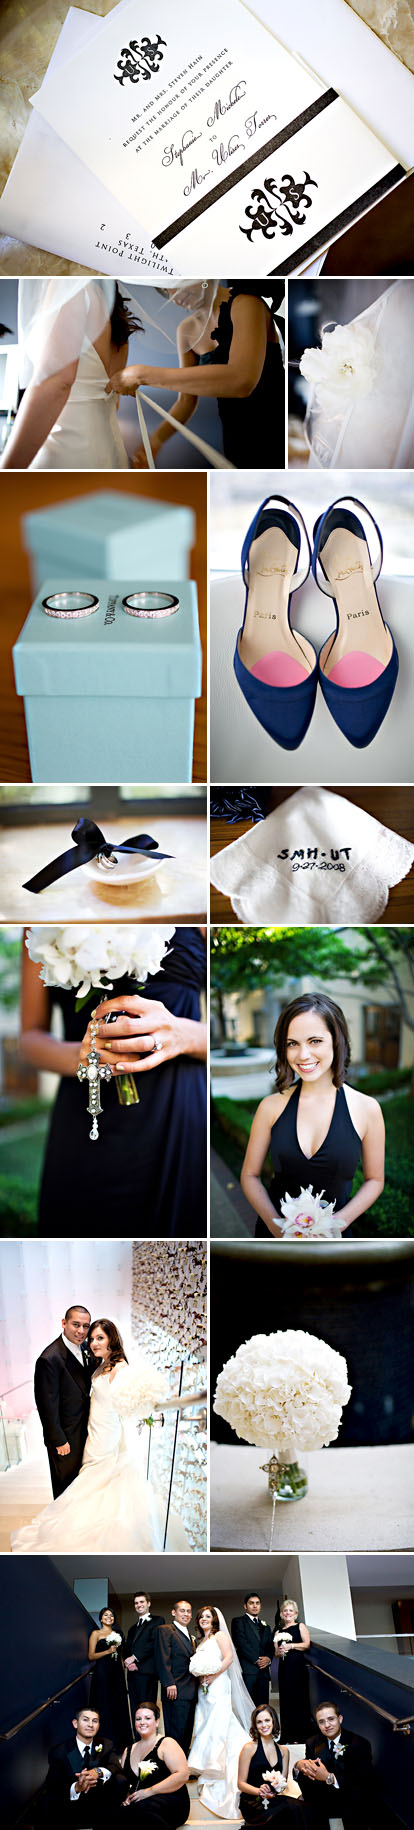 Perez Photogrpahy, black and white wedding color palette, Dallas, Texas modern wedding